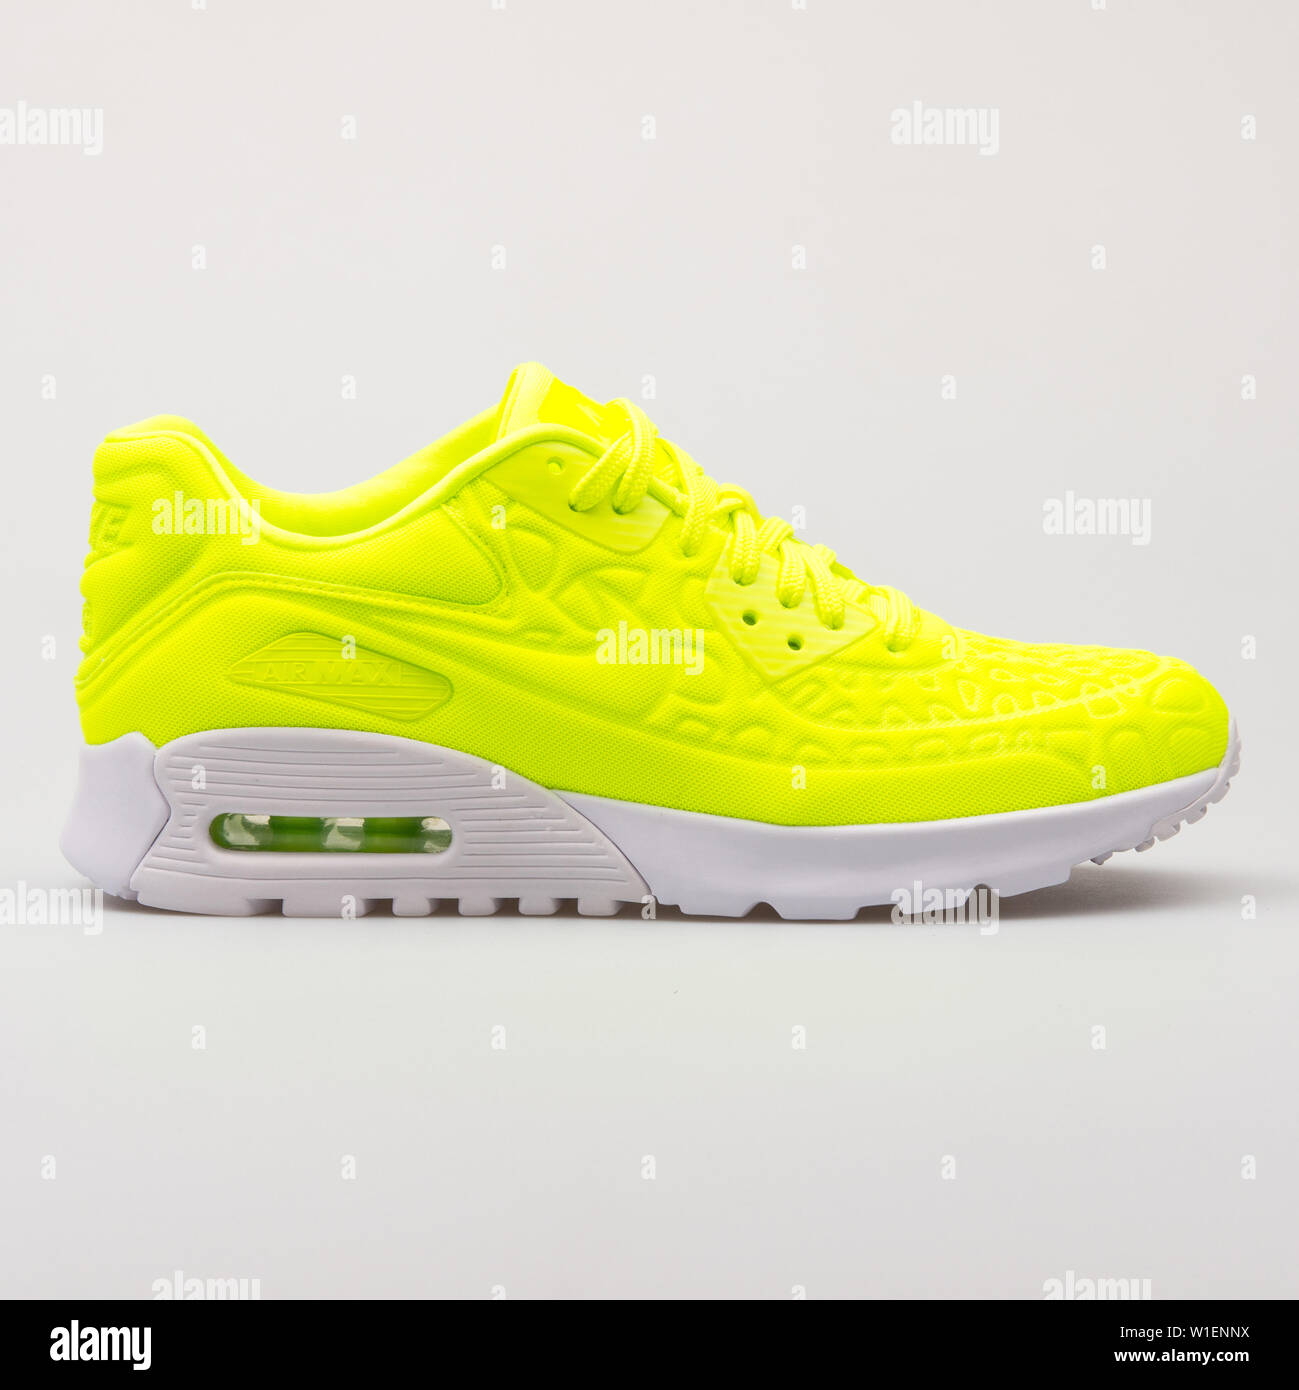 detailed look 61493 746ff VIENNA, AUSTRIA - AUGUST 30, 2017  Nike Air Max 90 Ultra Plush volt yellow  sneaker on white background.